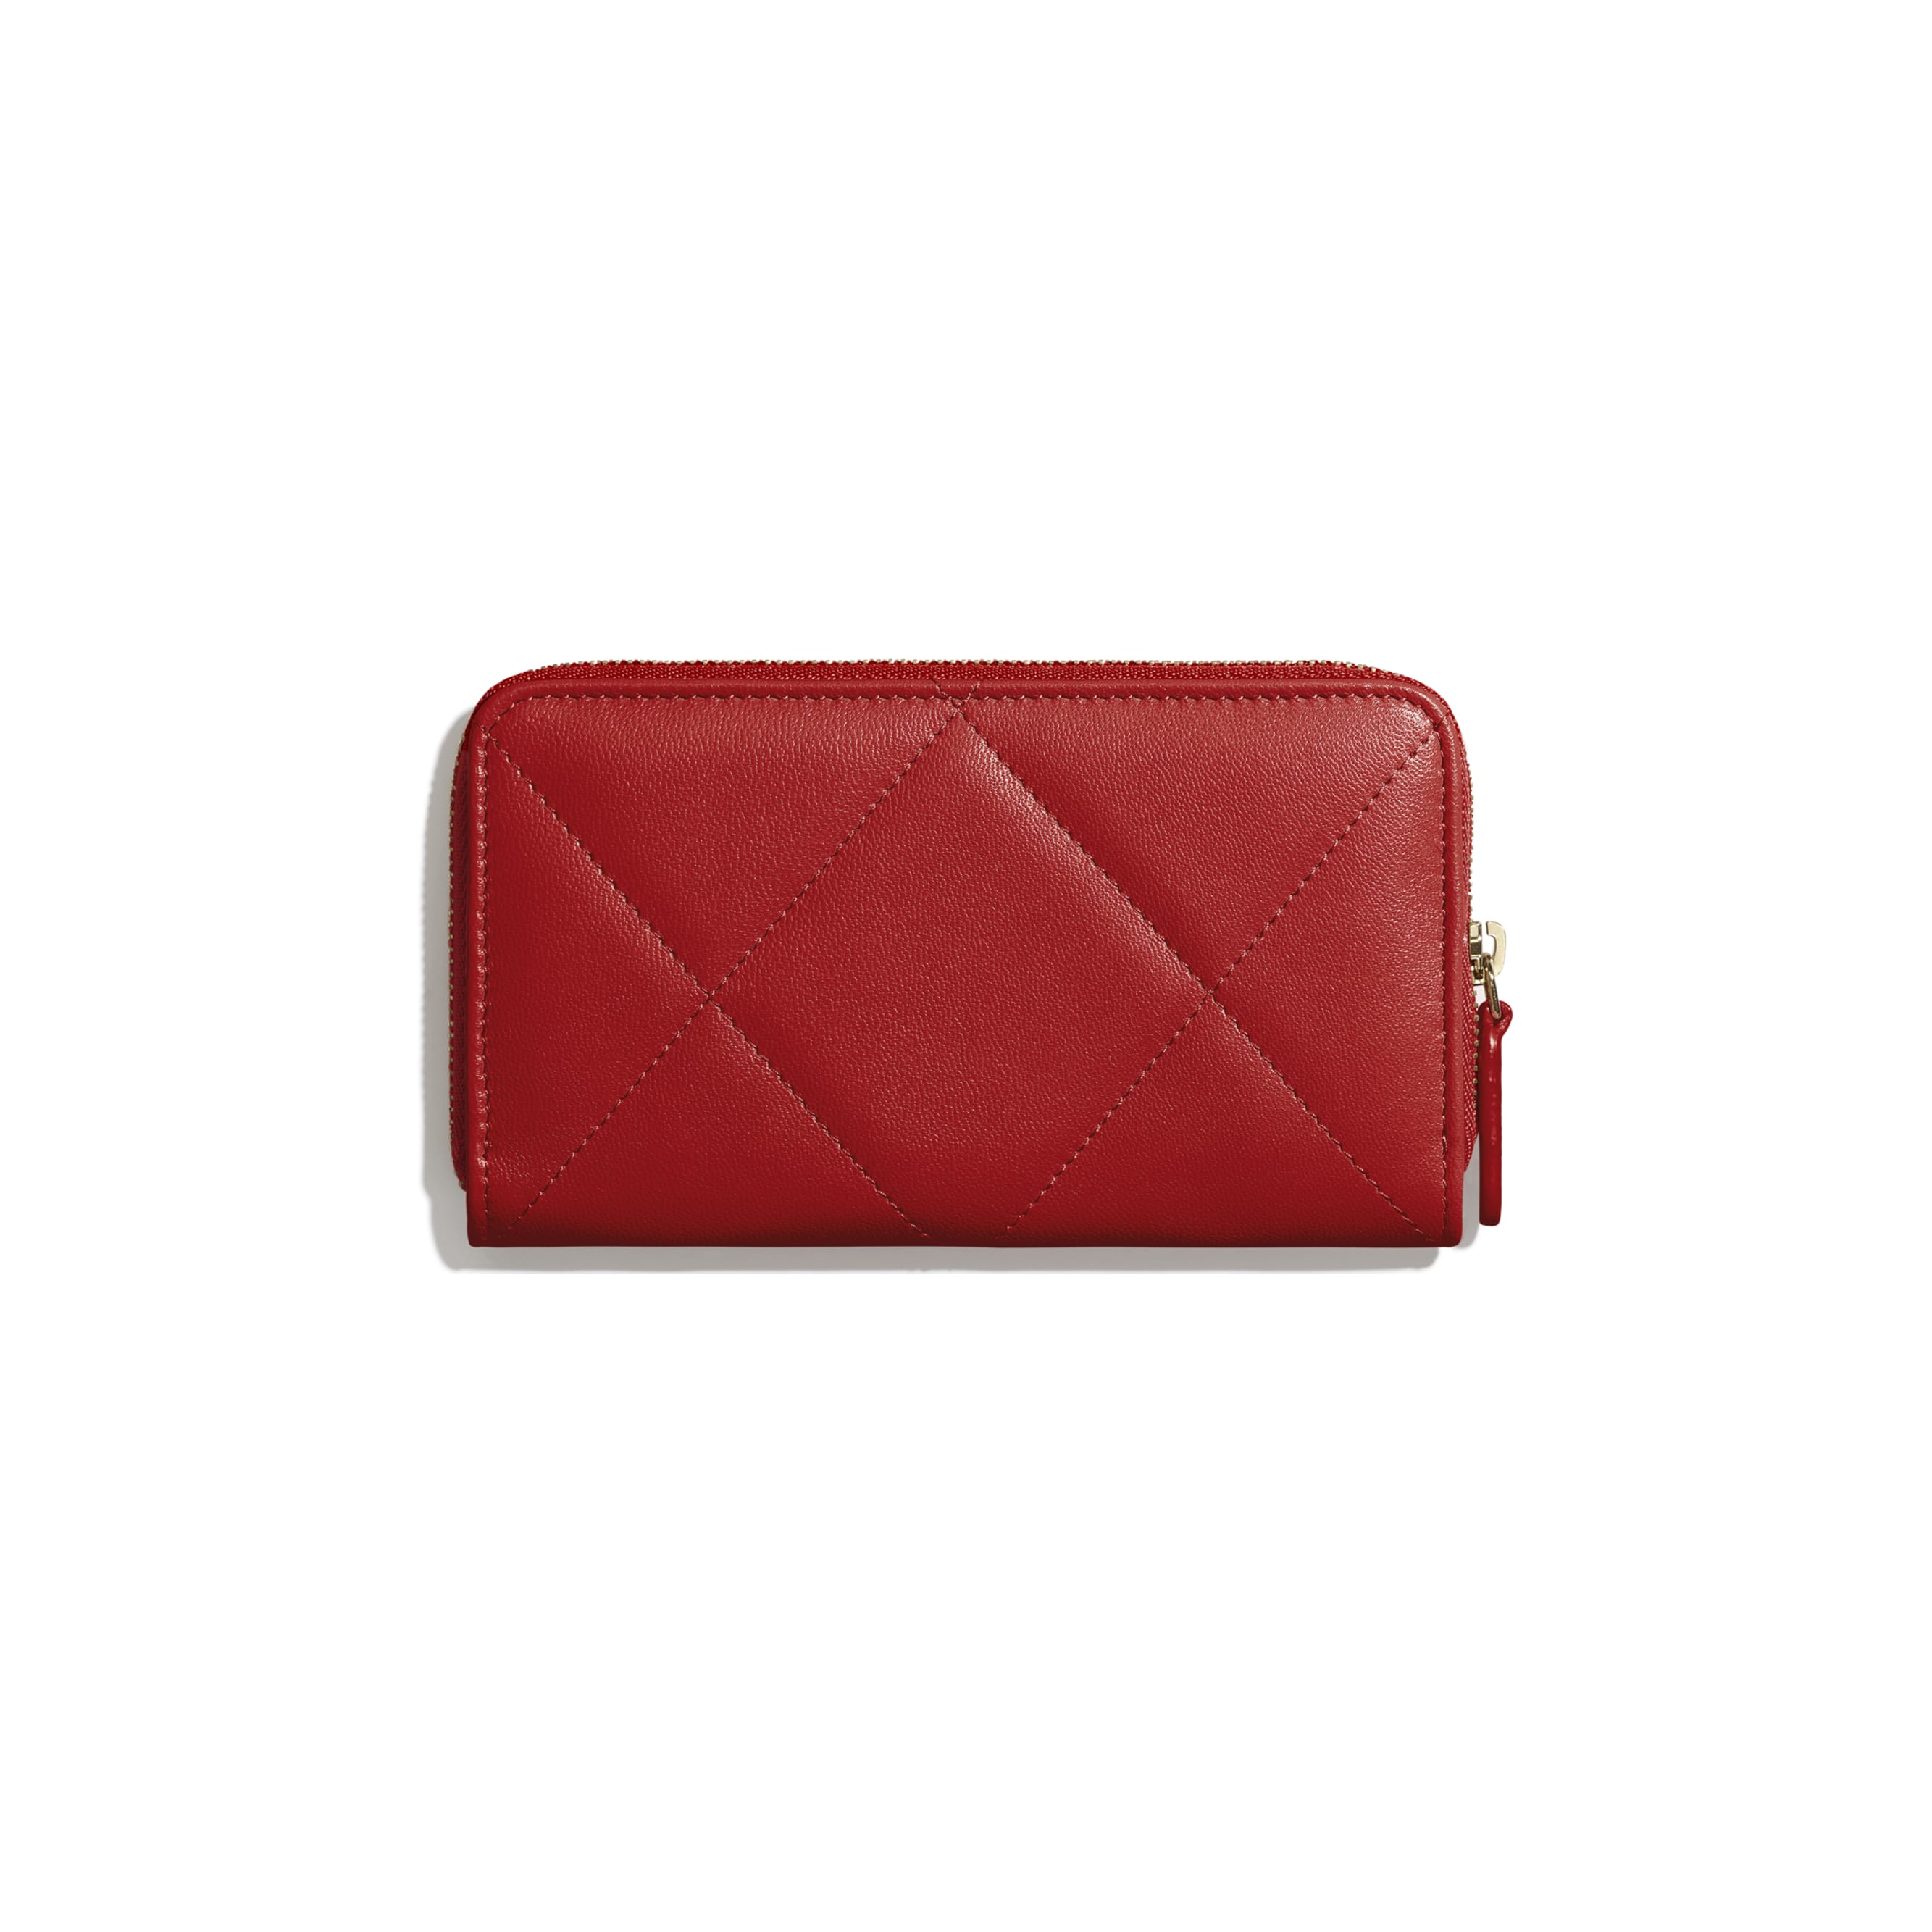 CHANEL 19 Zipped Wallet - Red - Shiny Goatskin, Gold-Tone, Silver-Tone & Ruthenium-Finish Metal - Alternative view - see standard sized version